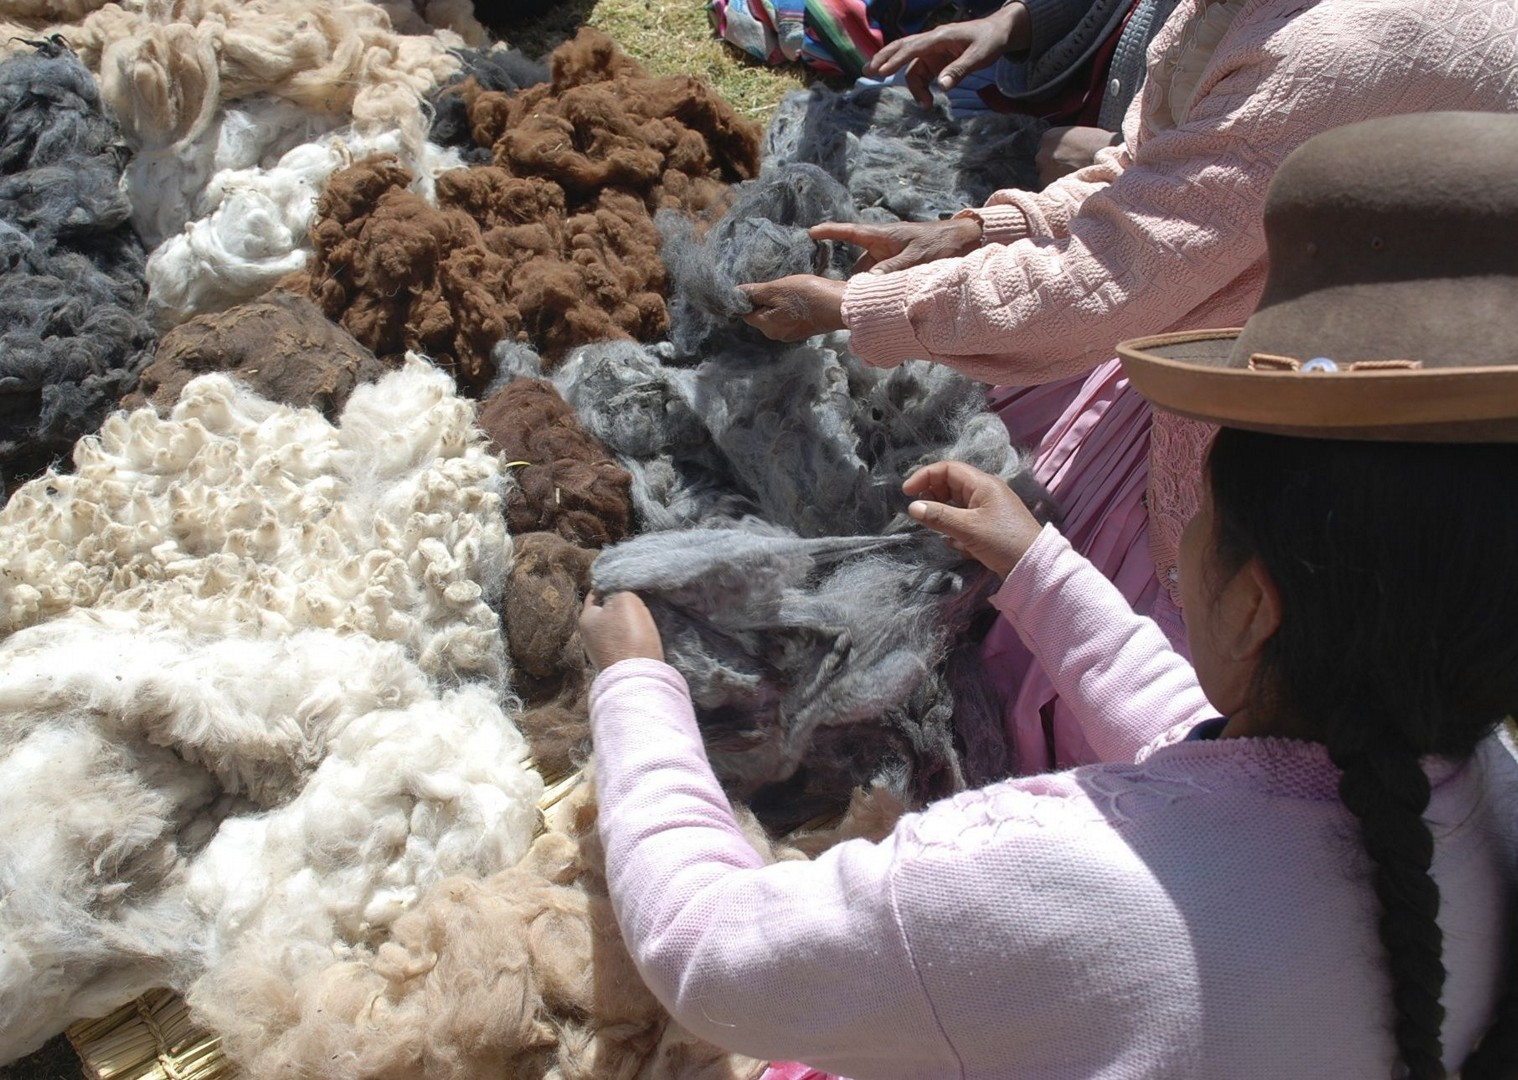 Sorting alpaca fibre.jpg - Peru - Meet the People Tours